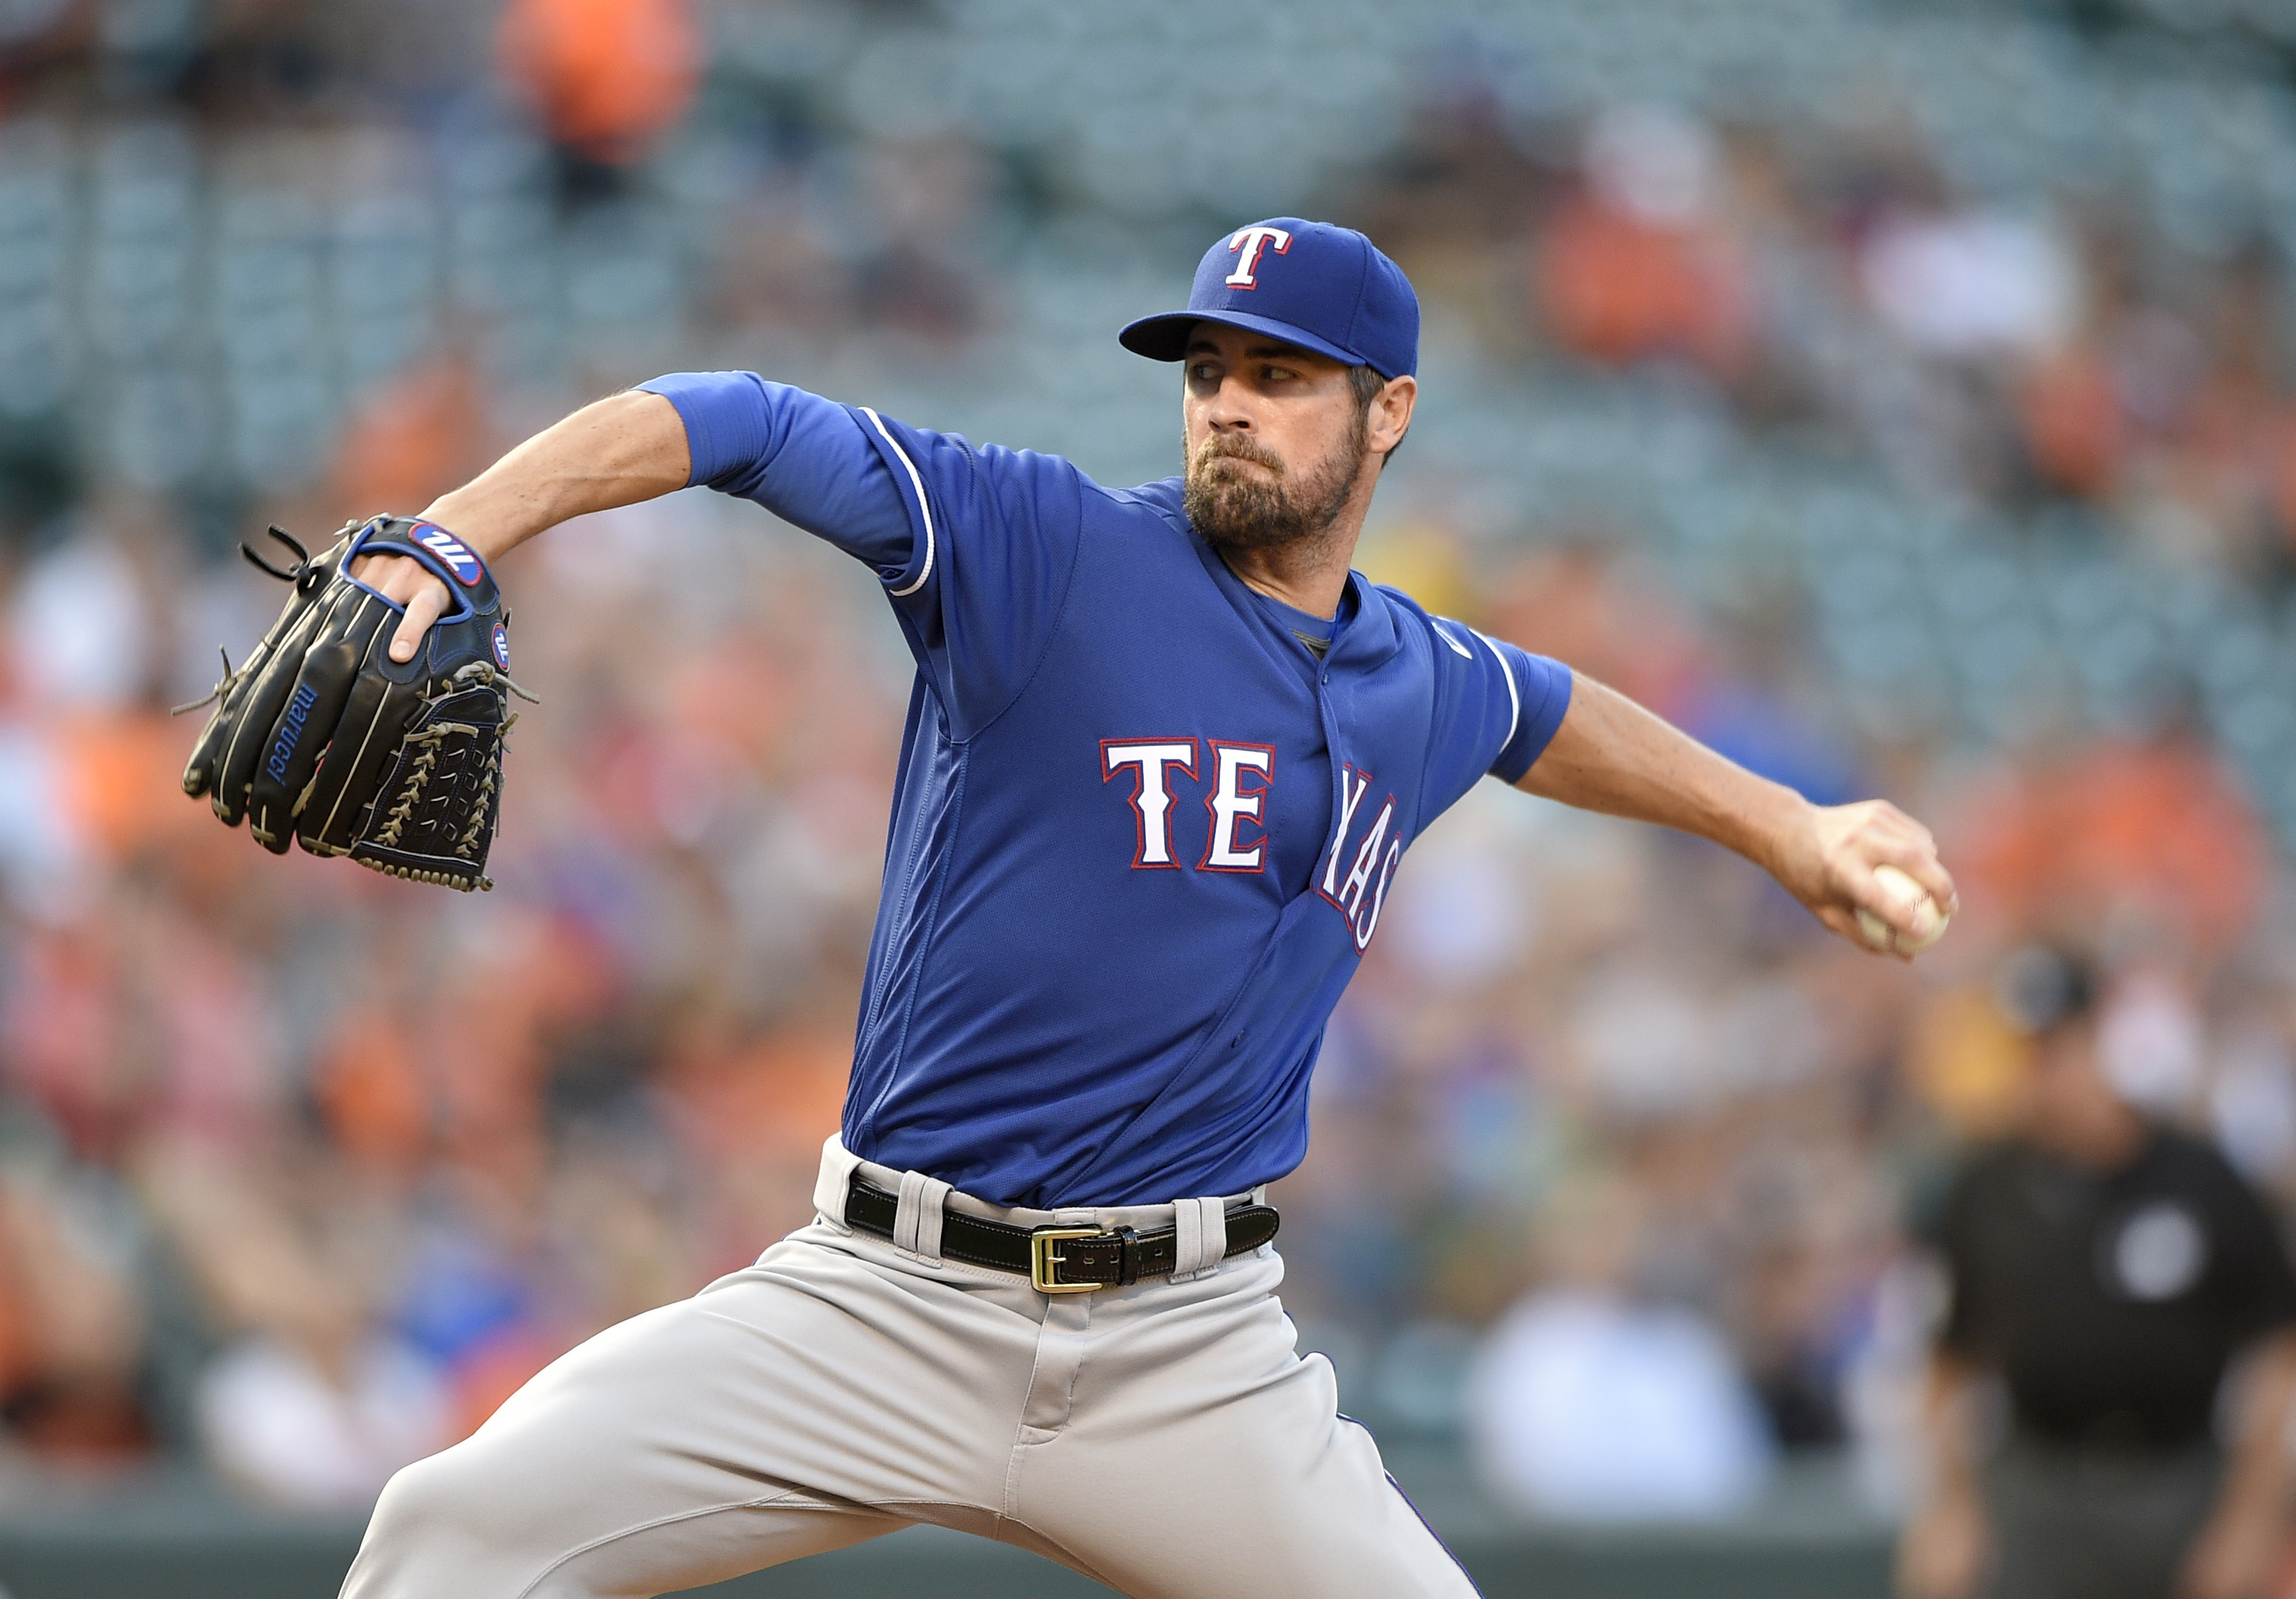 Texas Rangers starting pitcher Cole Hamels delivers a pitch during the first inning of a baseball game against the Baltimore Orioles, Wednesday, Aug. 3, 2016, in Baltimore. (AP Photo/Nick Wass)